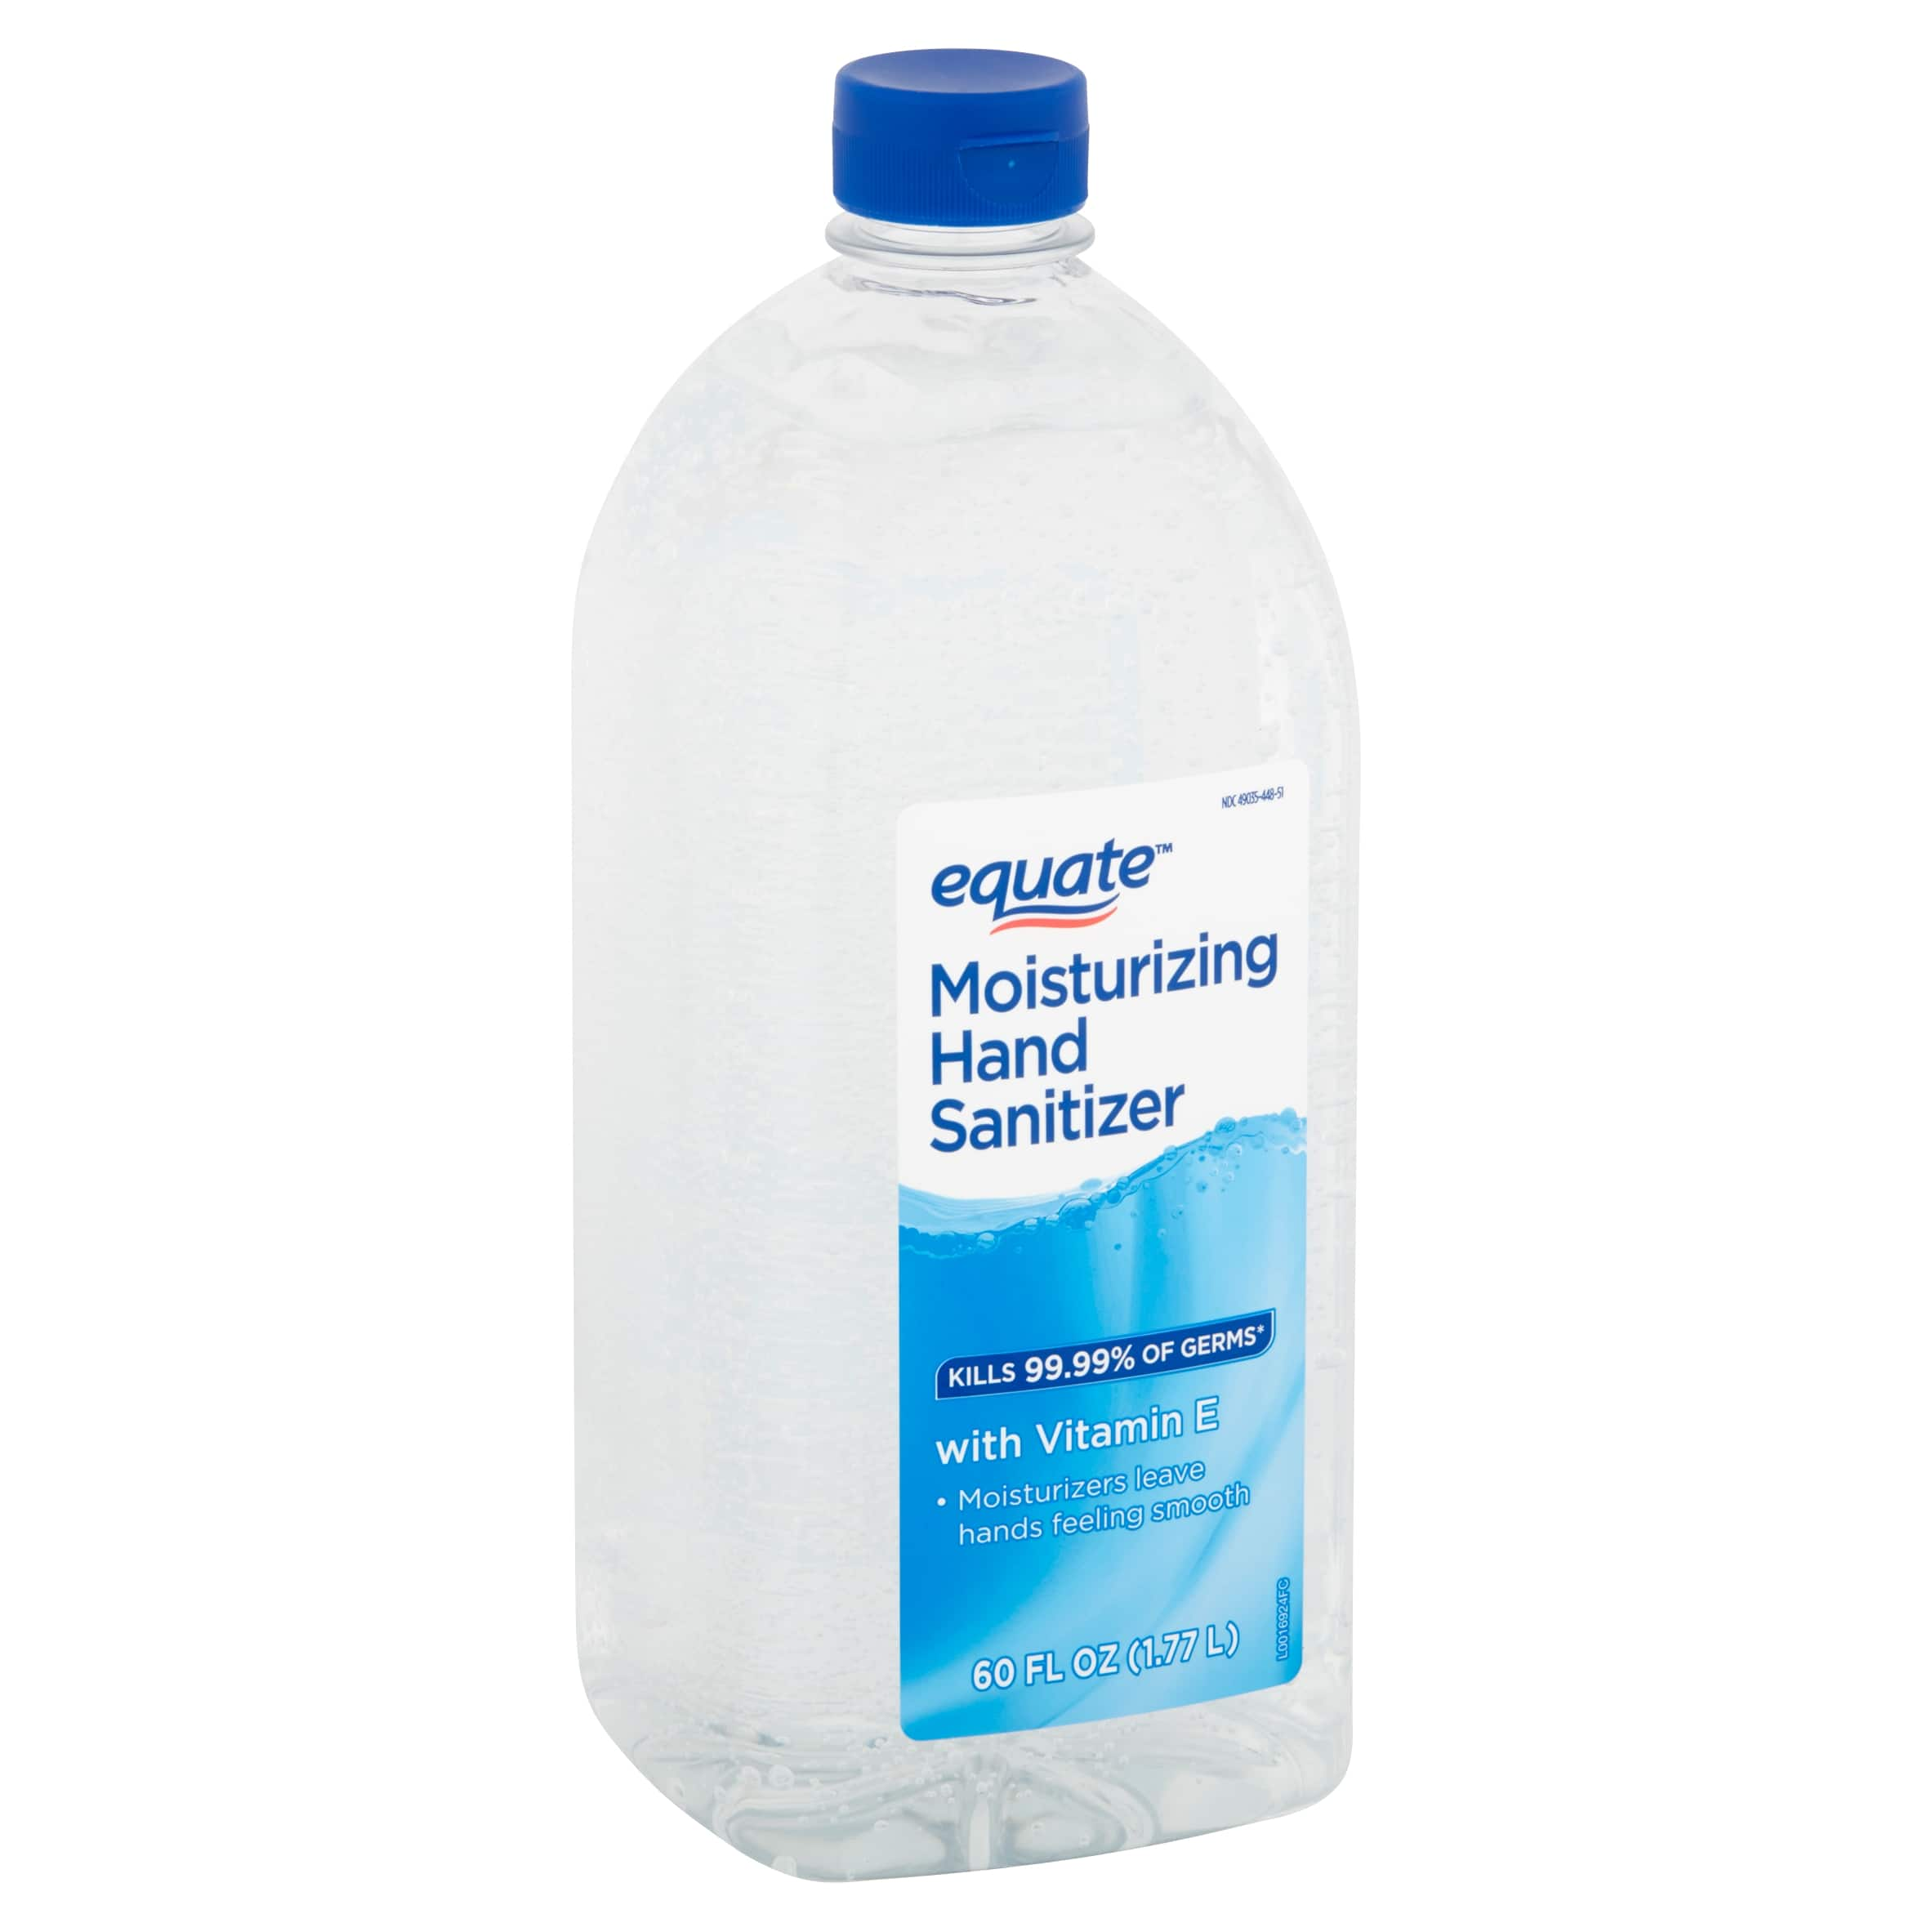 Equate Moisturizing Hand Sanitizer, 60 fl oz only $5.97 with free shipping over $35